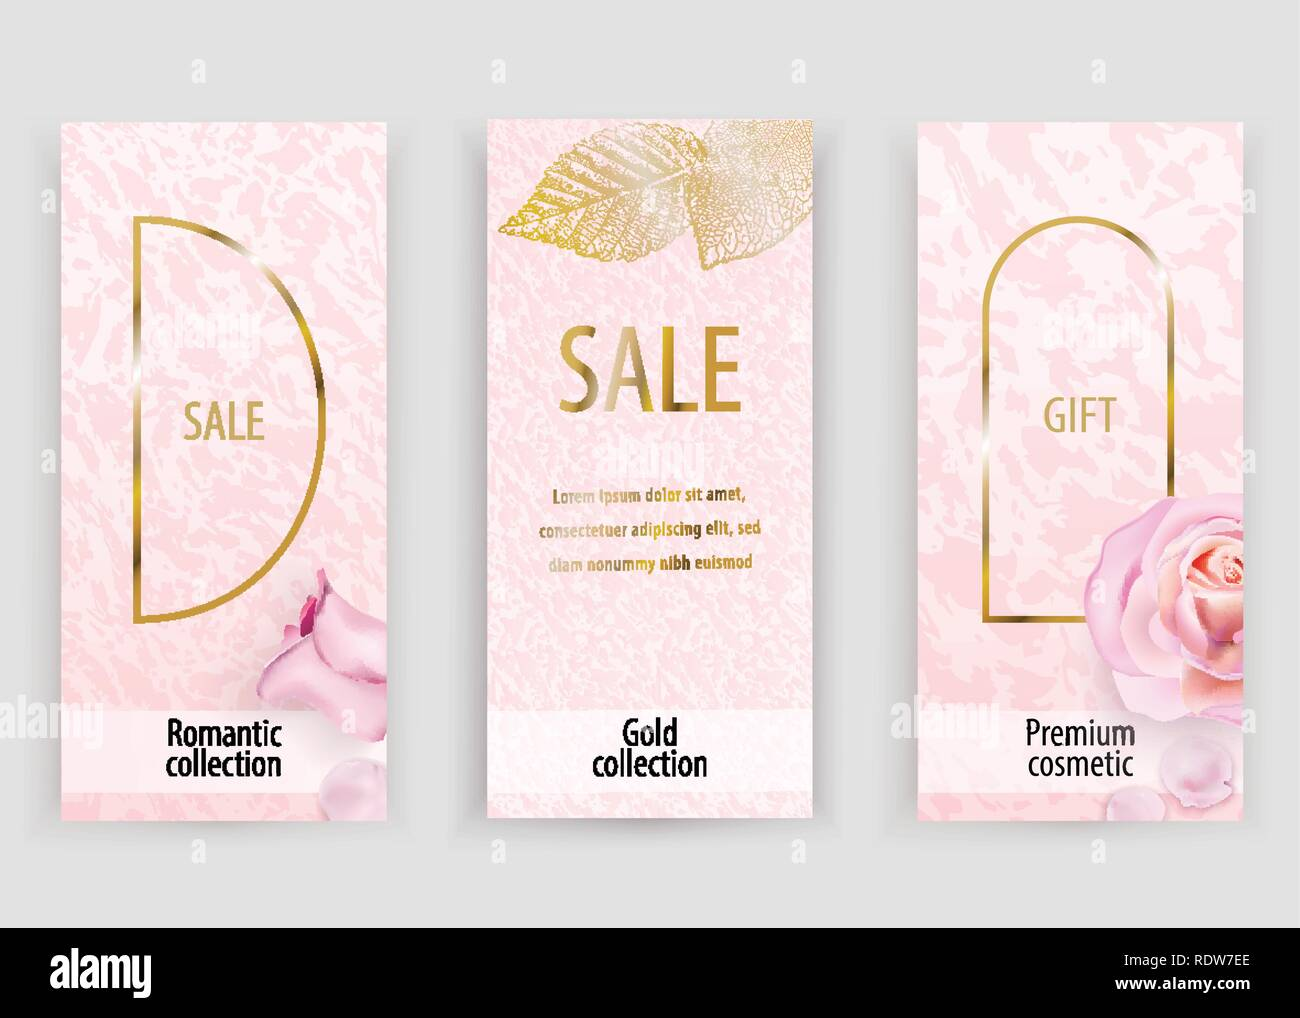 Pink Gold Vector Marble Background For Wedding Cosmetic 8 March Parfume Shops Stock Vector Image Art Alamy